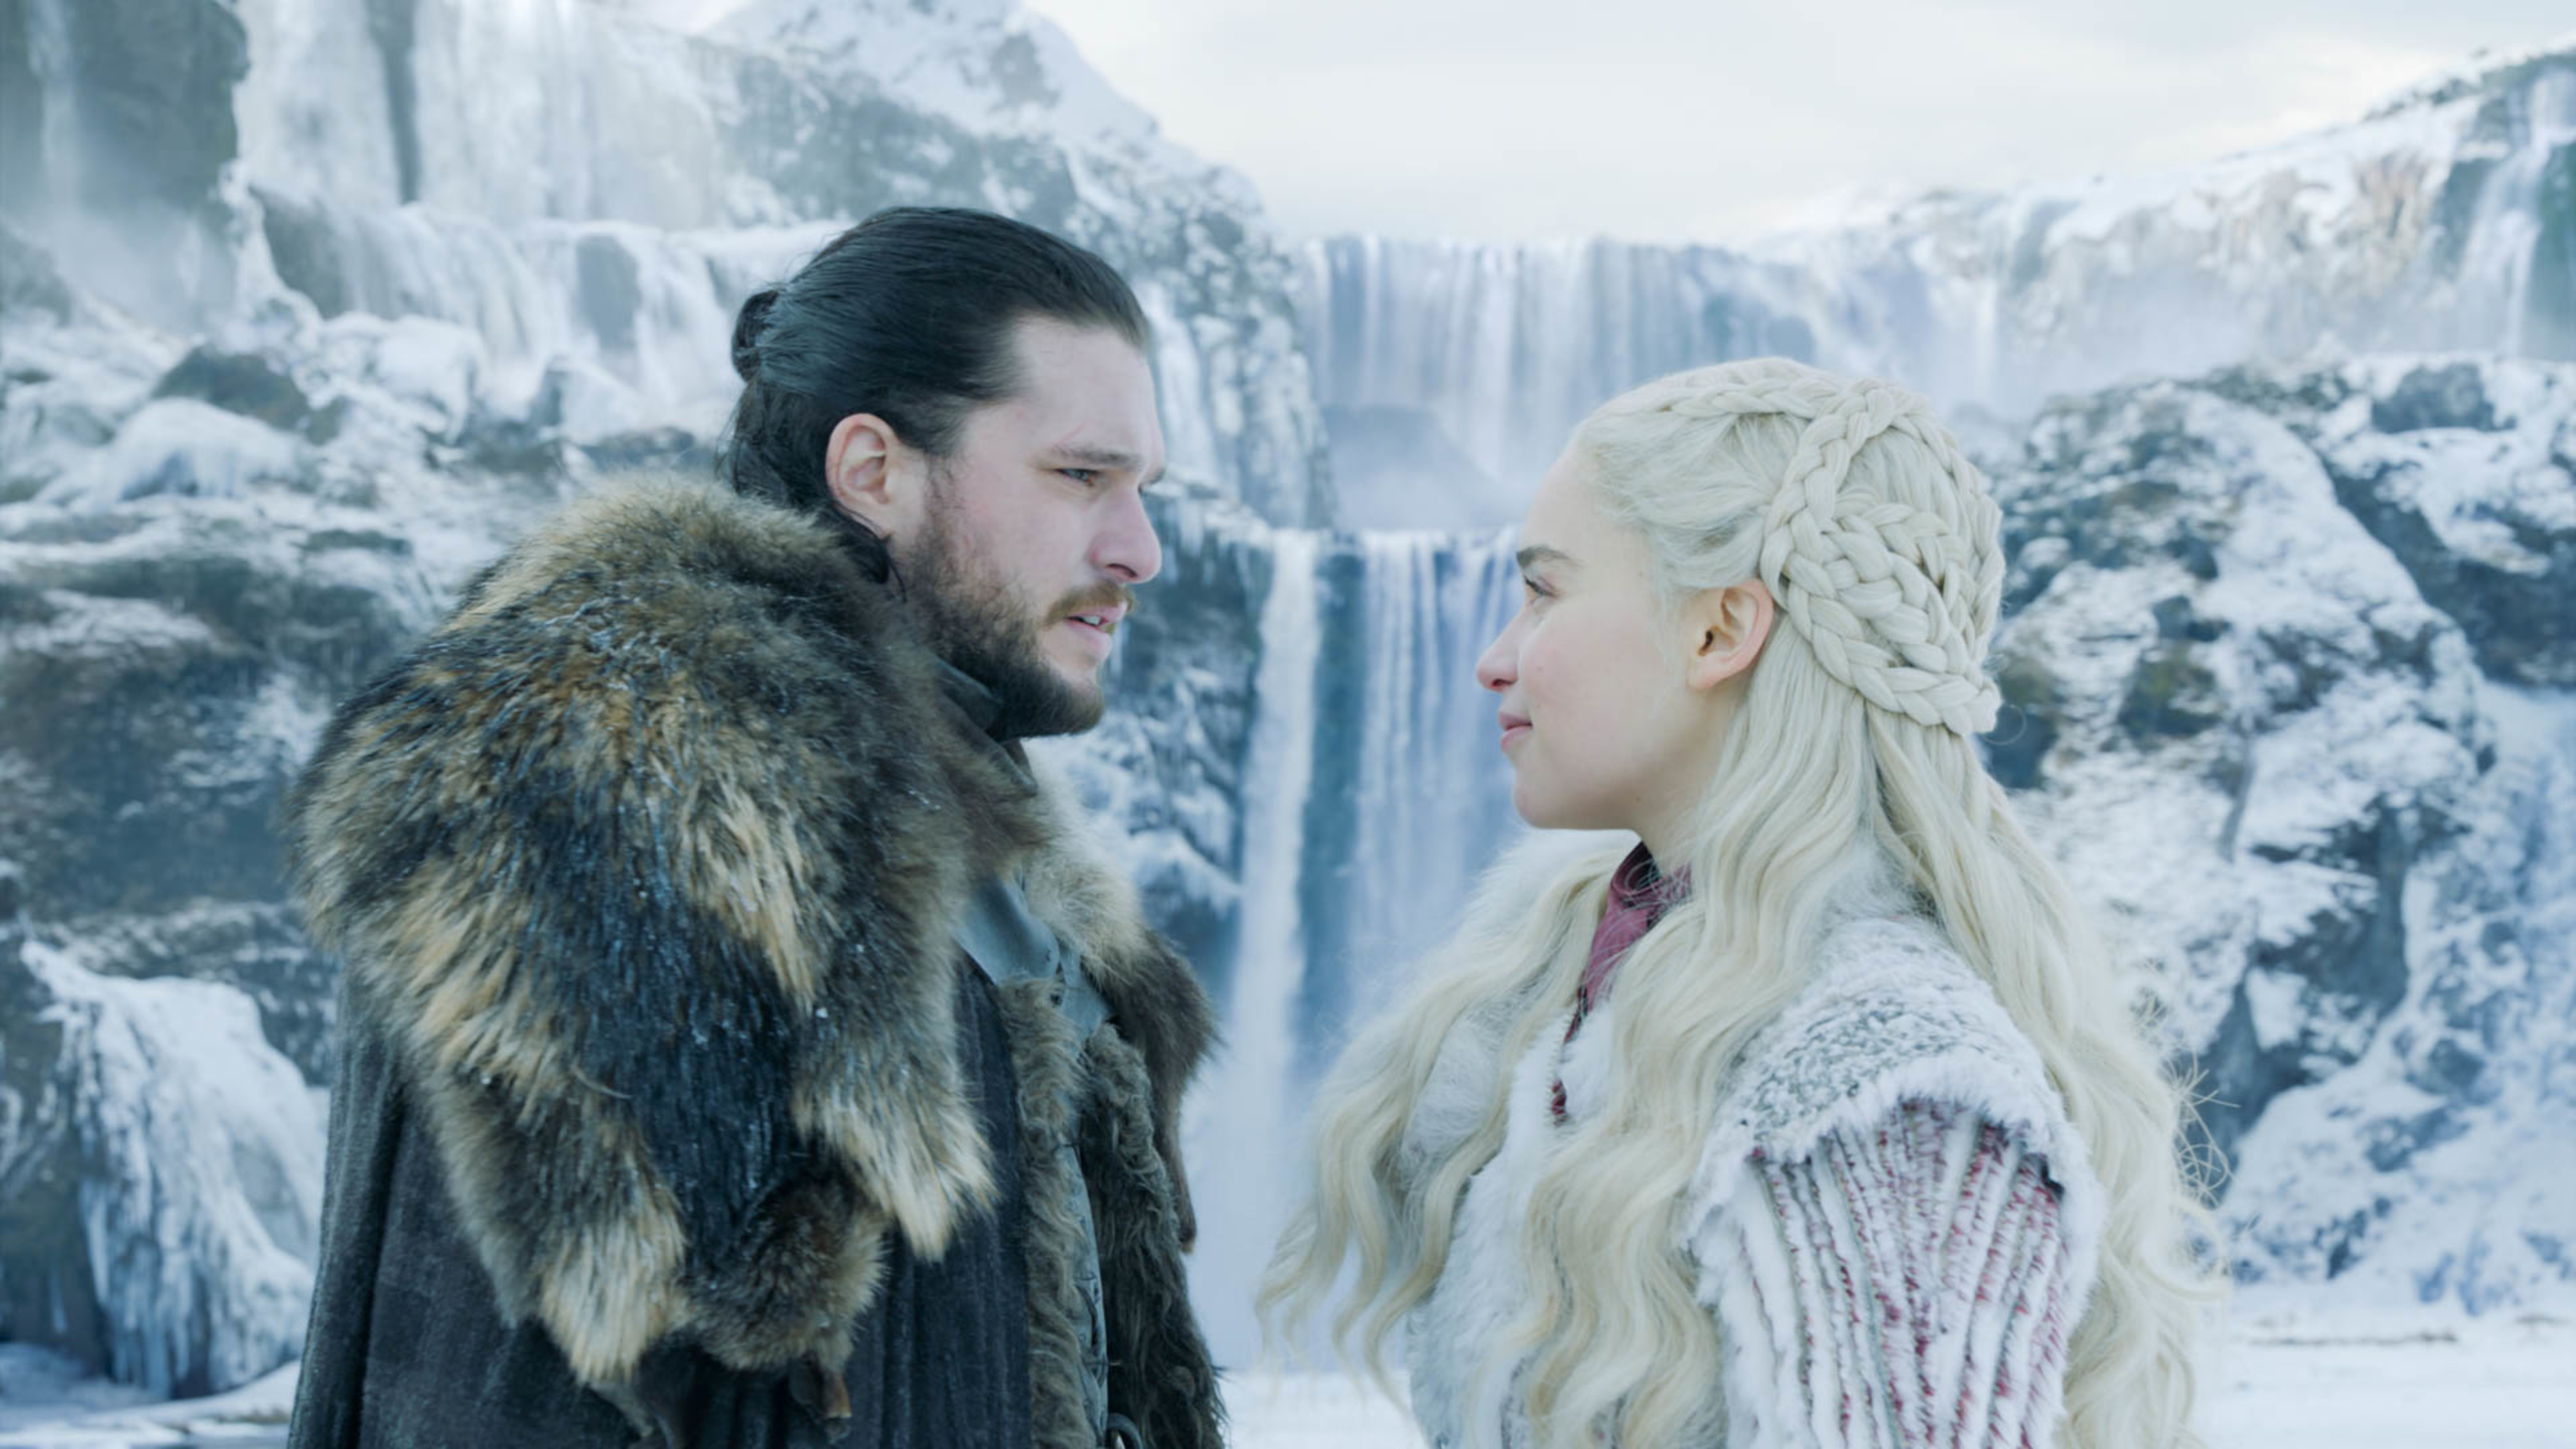 In  Winterfell,  Jon Snow learned the truth about his parentage and his relationship with Daenerys.